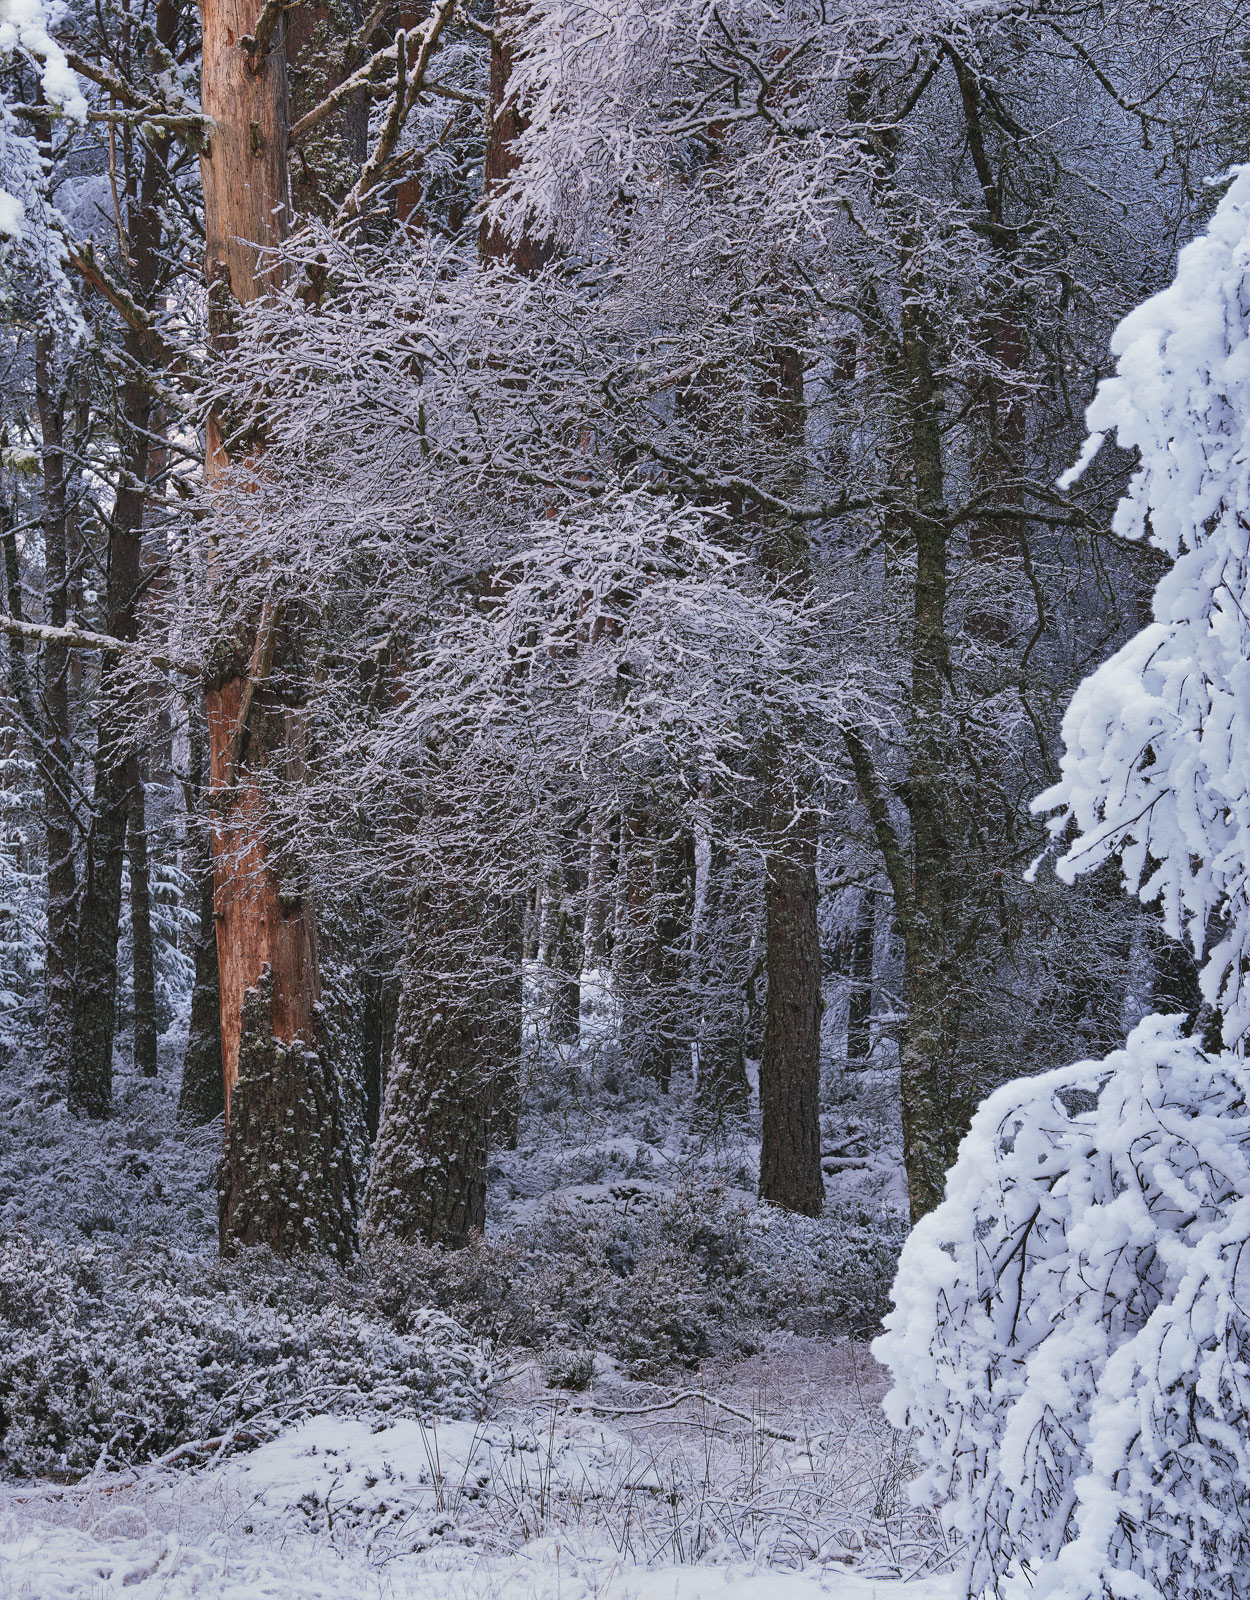 Apart from the sheer wonder of being amongst trees literally dripping with fresh new snow my first thought was for the poor naked...